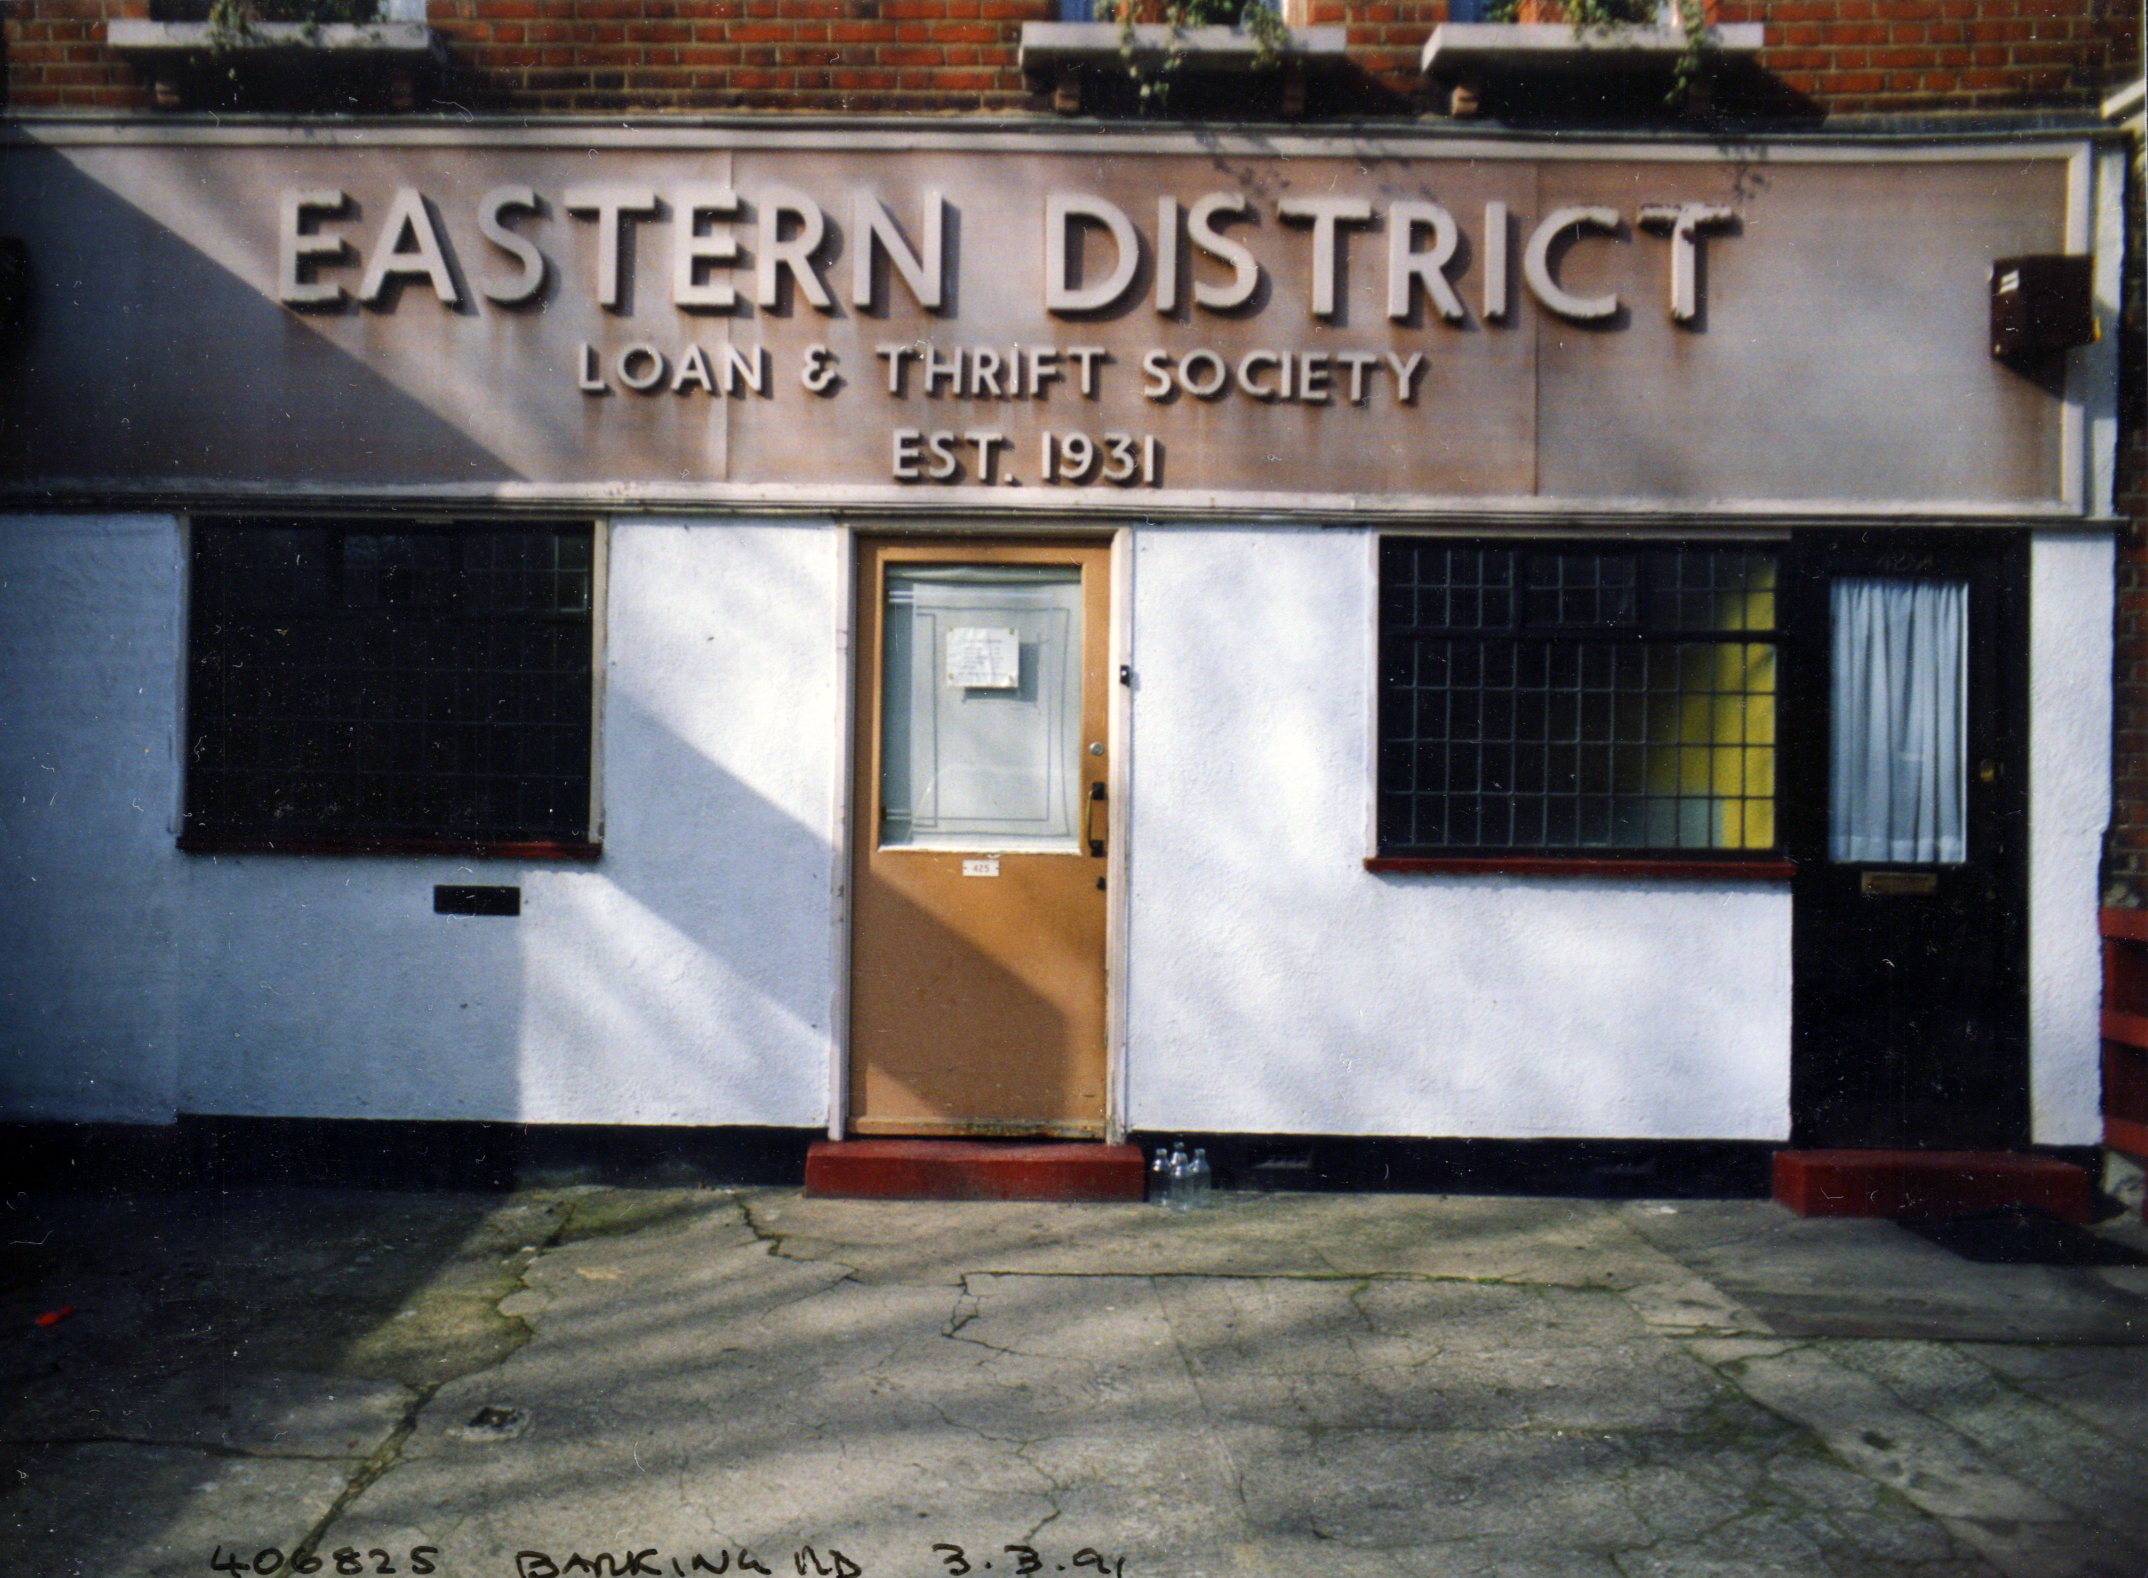 Eastern District, Loan & Thrift Society, Barking Rd, Plaistow, Newham, 1991